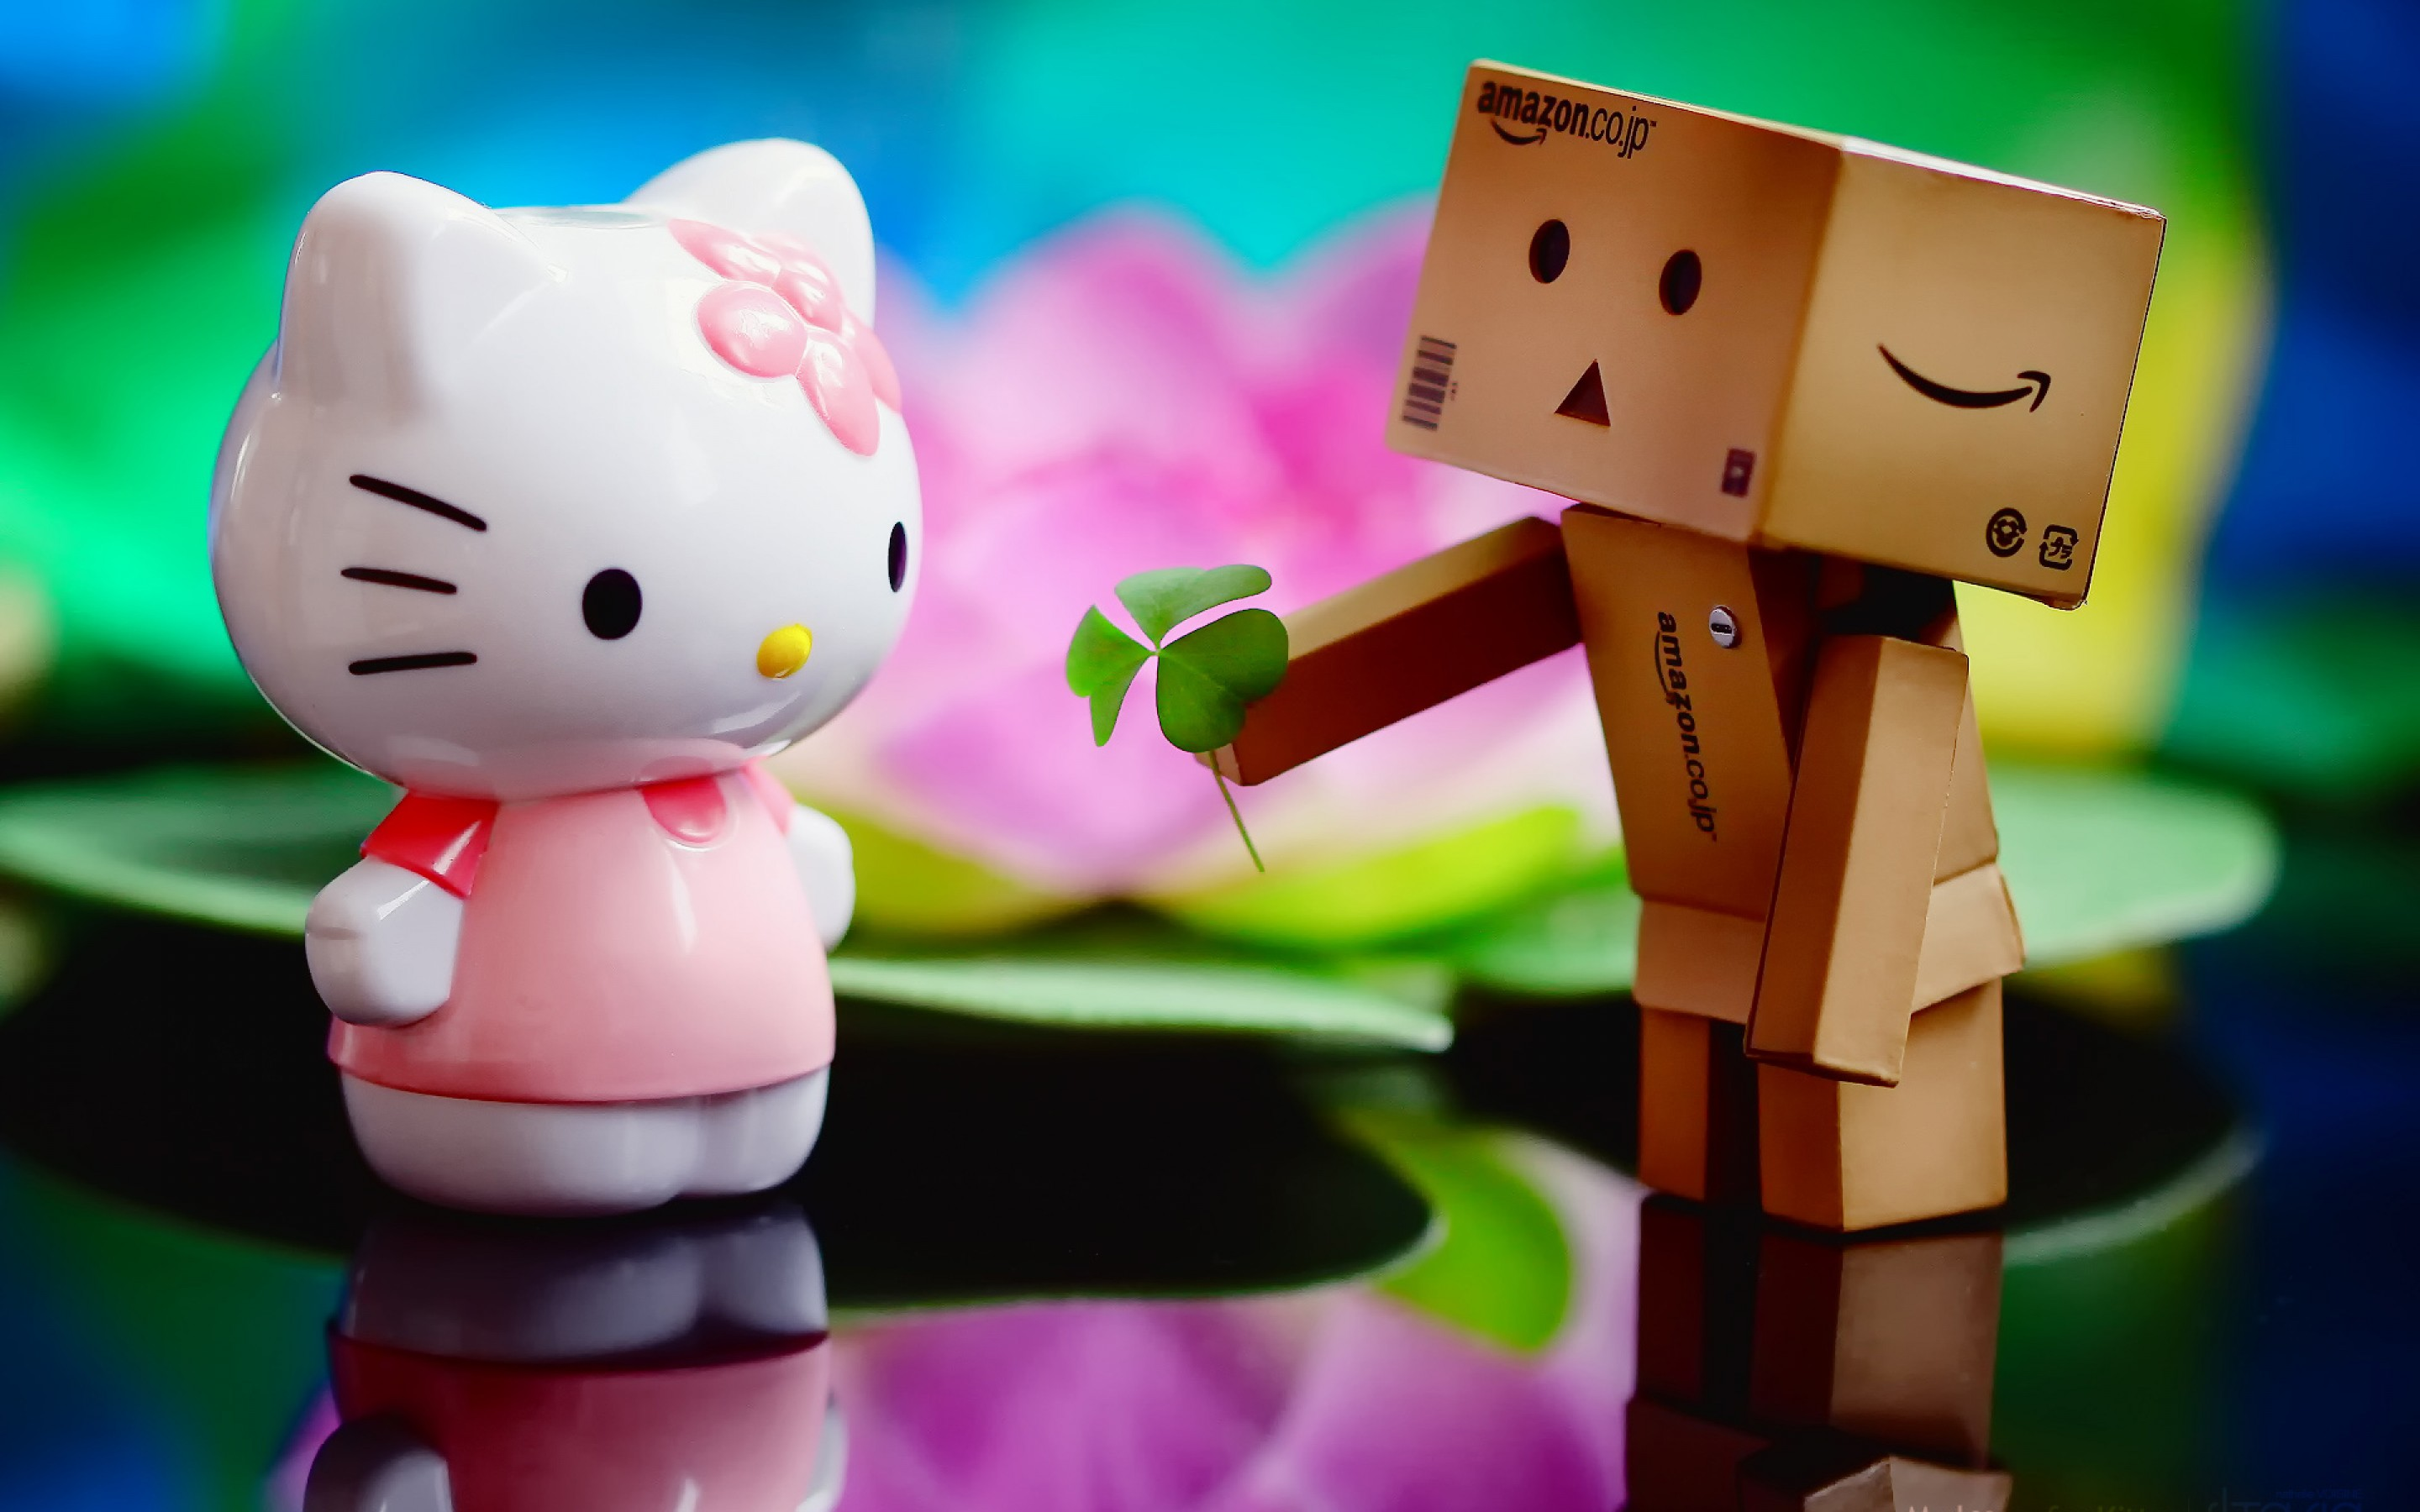 Danboo Cute Doll Wallpaper Wallpaper